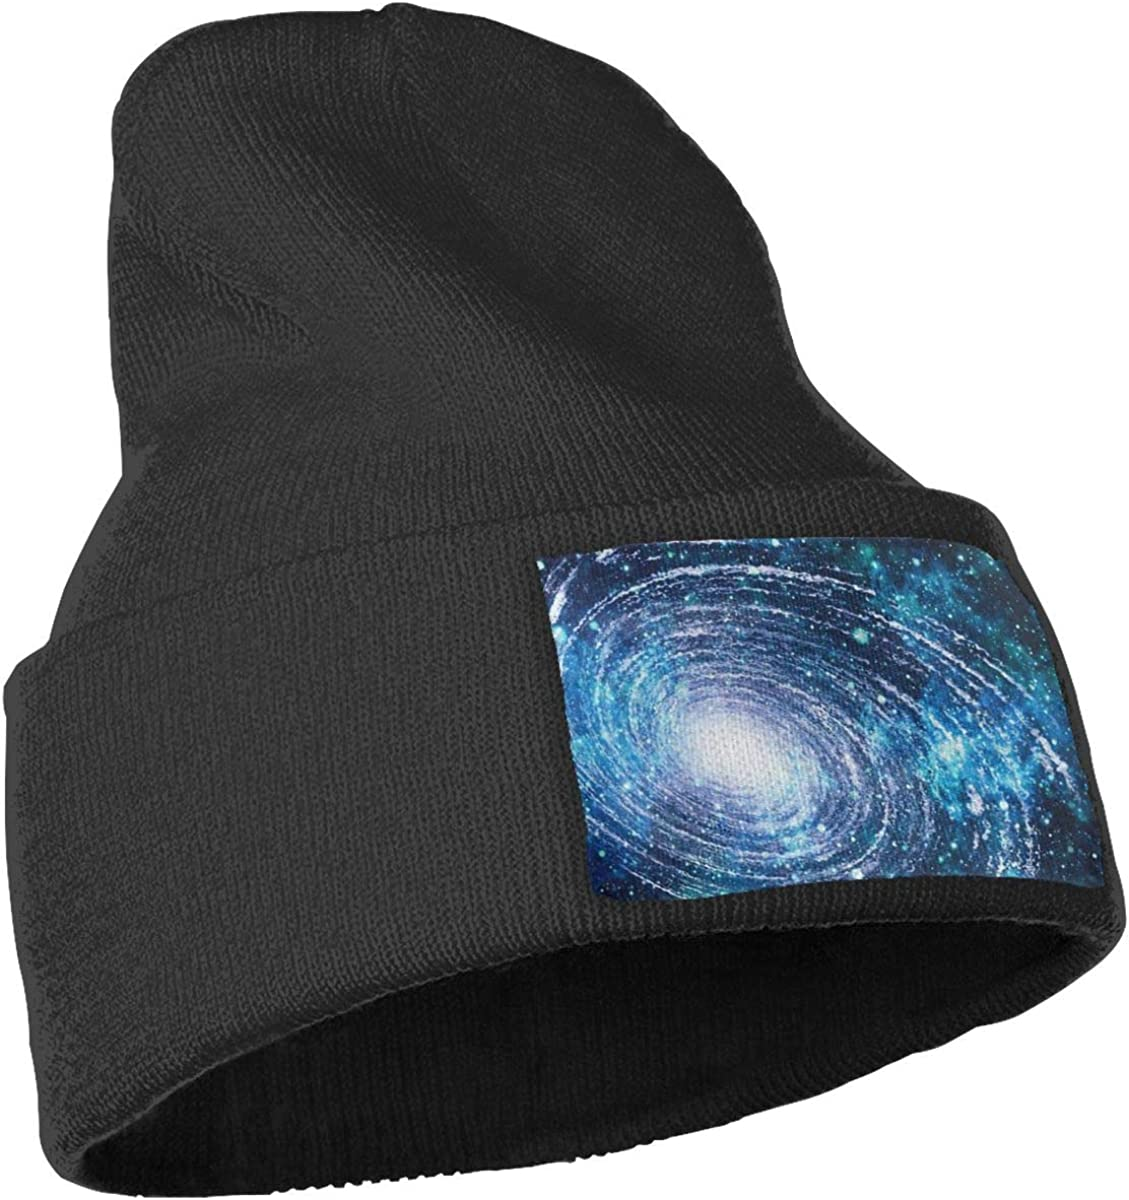 Unisex 100/% Acrylic Knit Hat Cap Galaxies in The Universe Thick Skull Cap